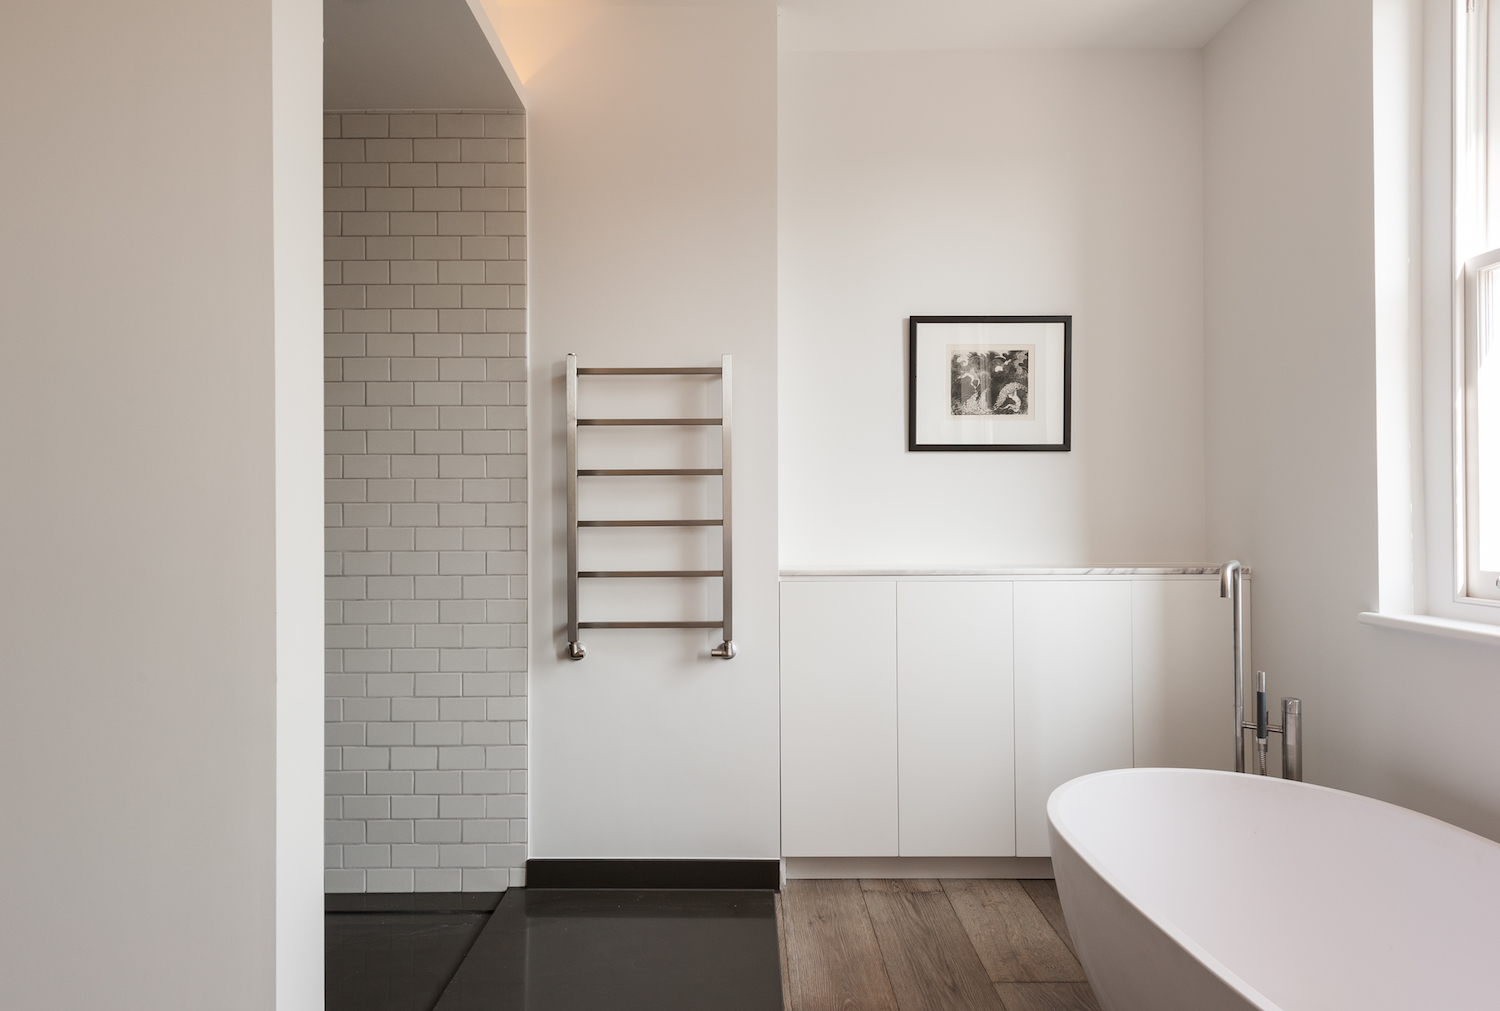 8 Best Towel Warmers To Keep You Snug After Showering